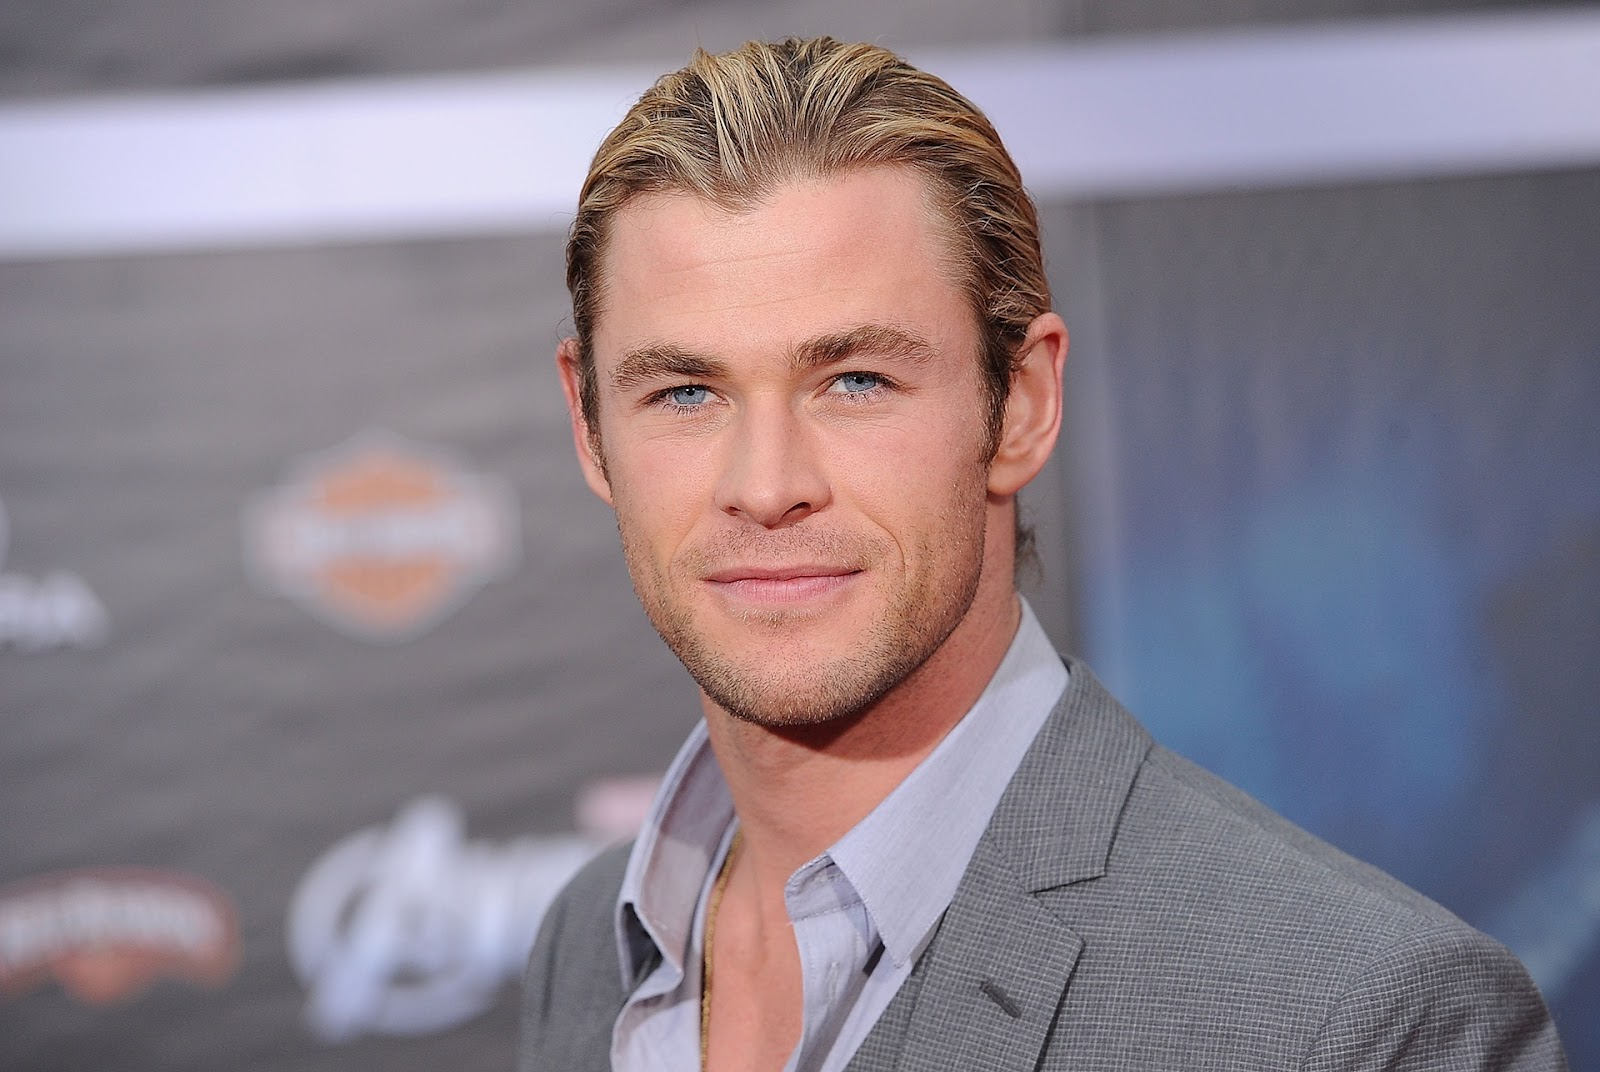 rc world australia with Felicidades Chris Hemsworth on 52769 together with Greenhouse effect L 0184 moreover Queens Birthday Honours Full 2017 10633223 together with A3 44 08 20300000821754134859081994485 further Felicidades Chris Hemsworth.